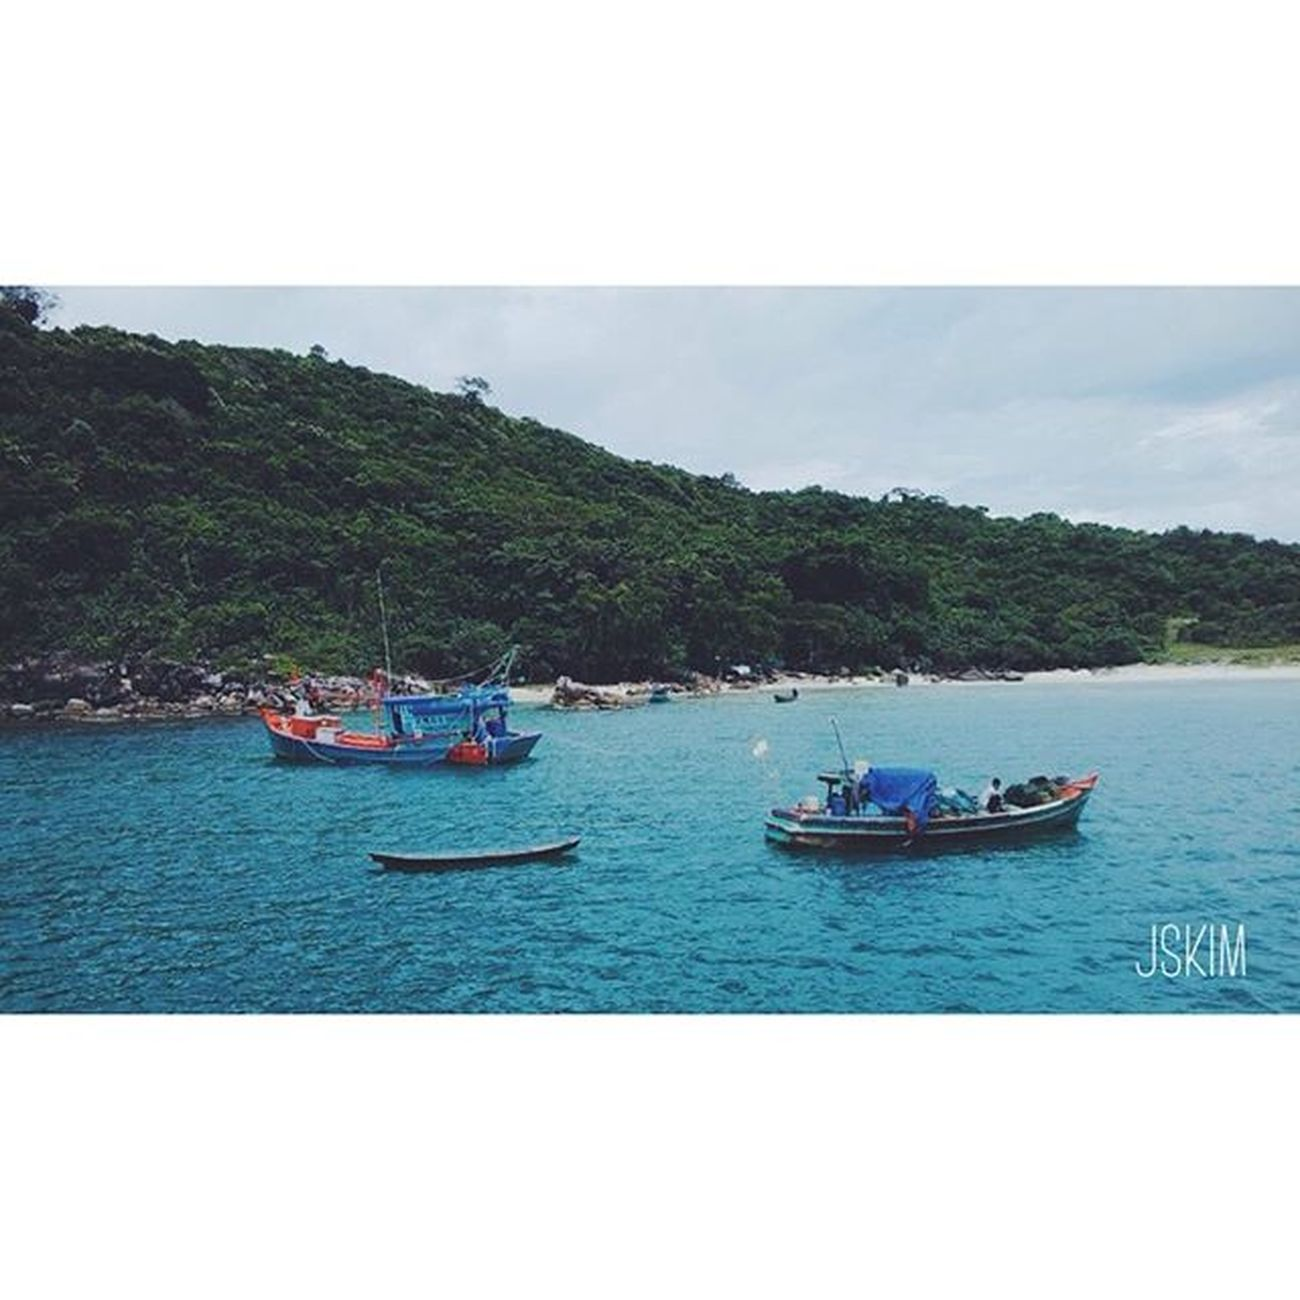 Diving in summer 👍👍👍 Vscocam VSCO Travel Sea Forest Island Vietnam Summer Diving Sky Piclab Fishingboats Travel